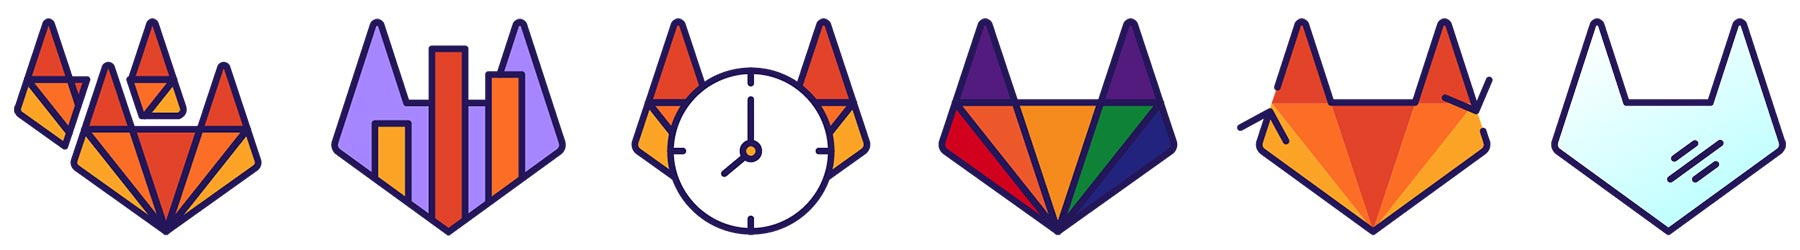 GitLab values illustration